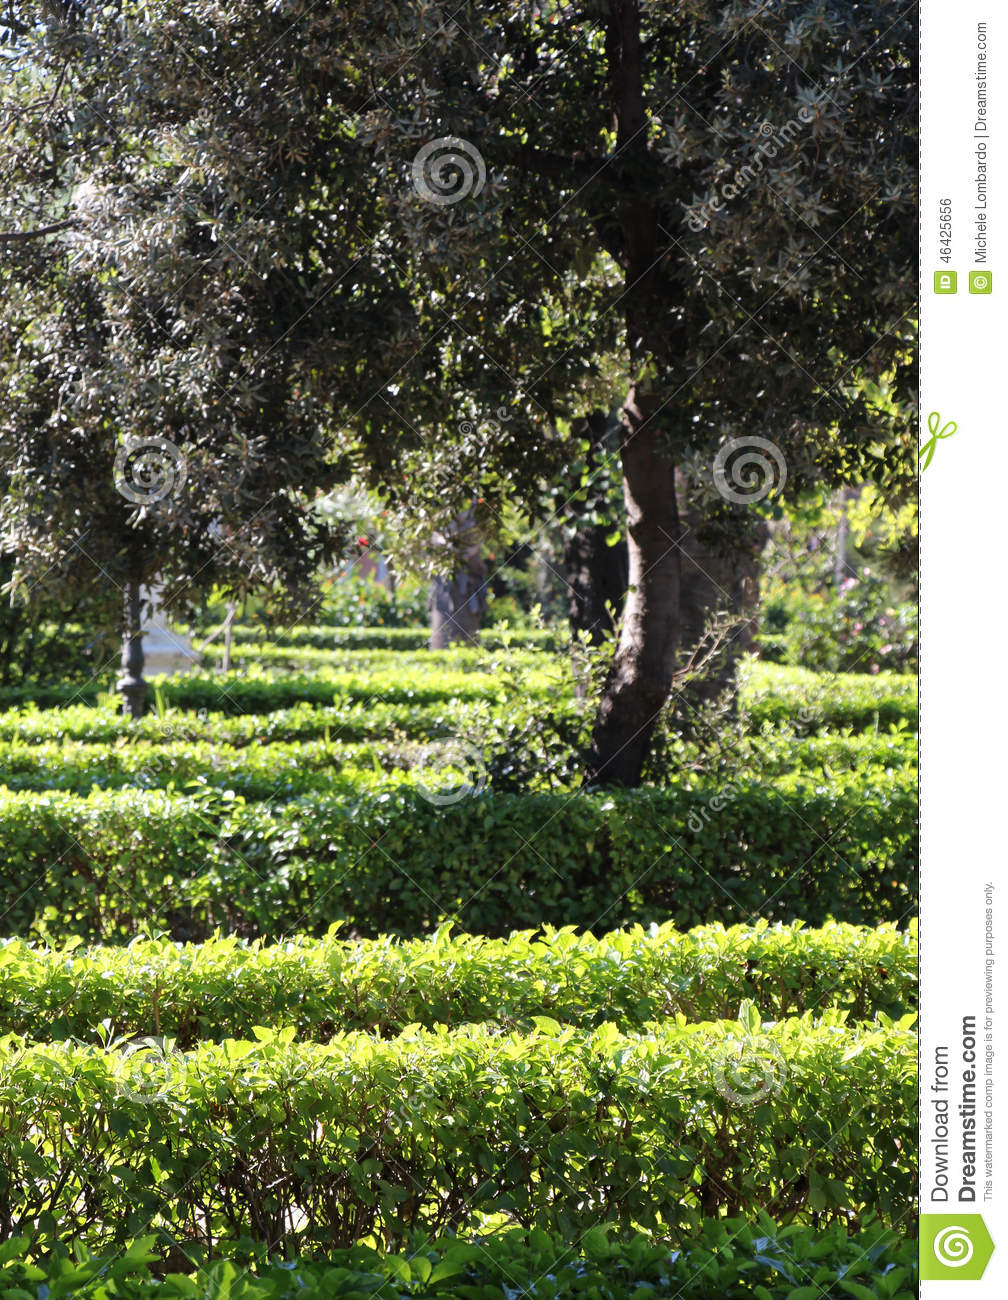 Hedges In A Garden Background Stock Photo Image 46425656